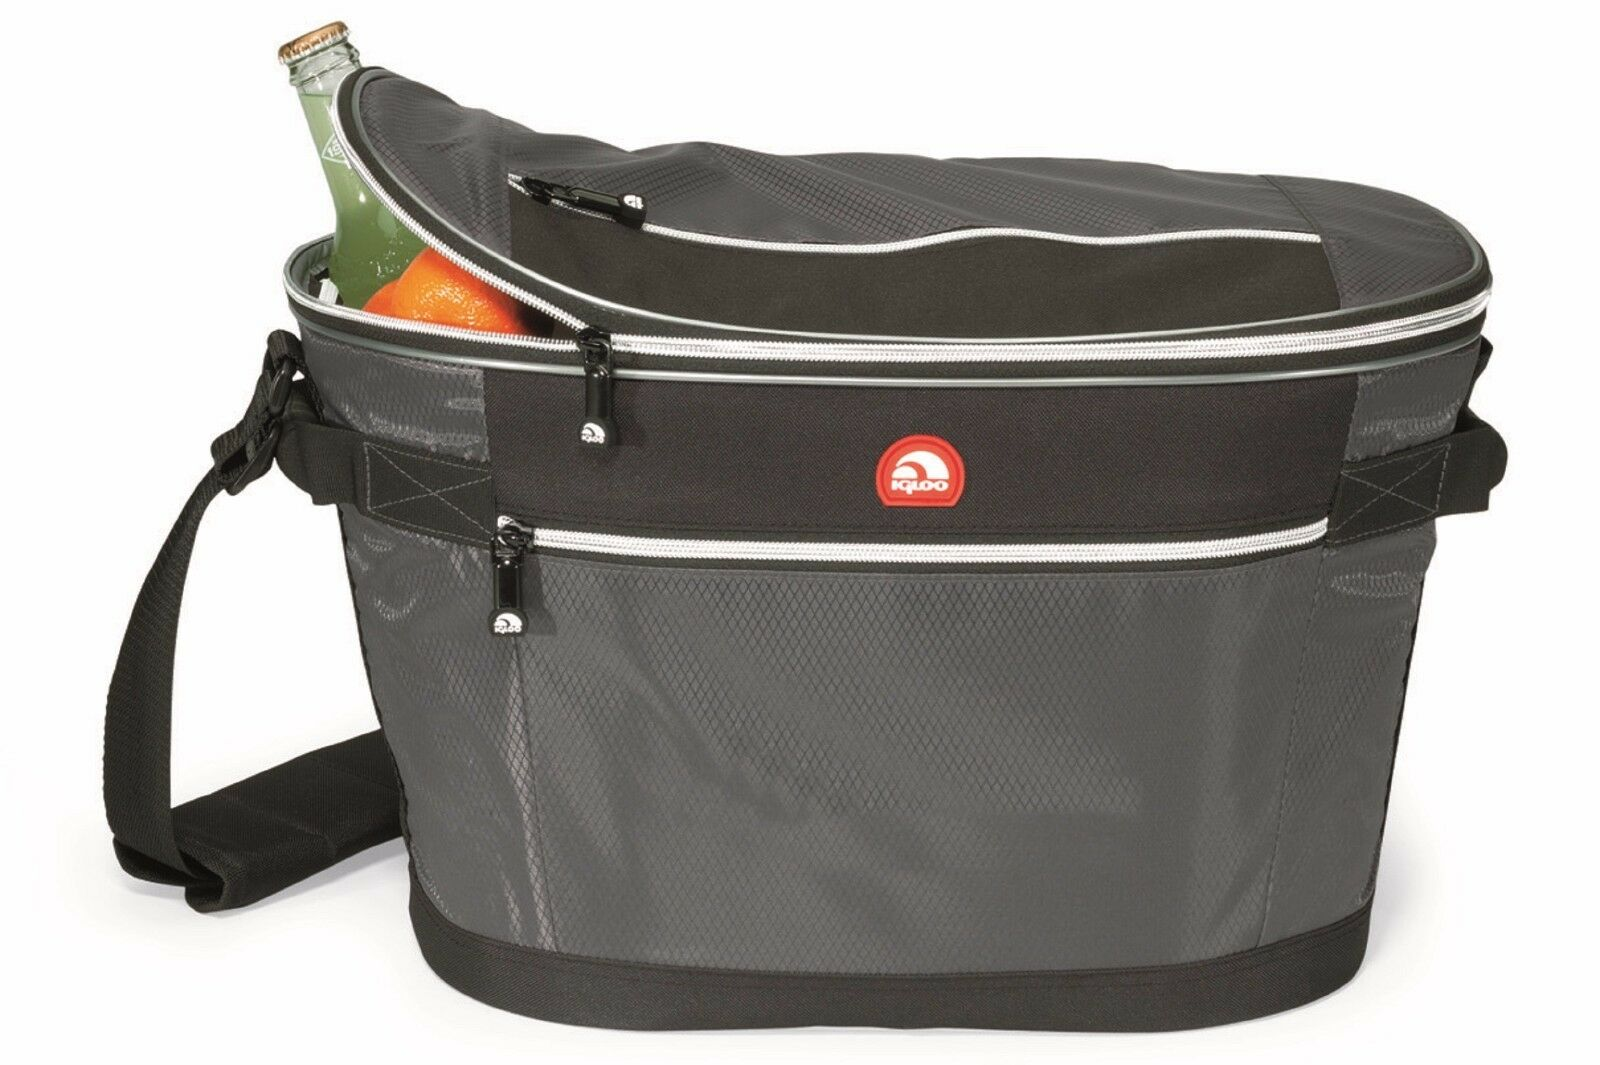 Igloo Party to Go  20 Can Enhanced Insulation Leak Resistant Cooler Bag - New  high quality & fast shipping